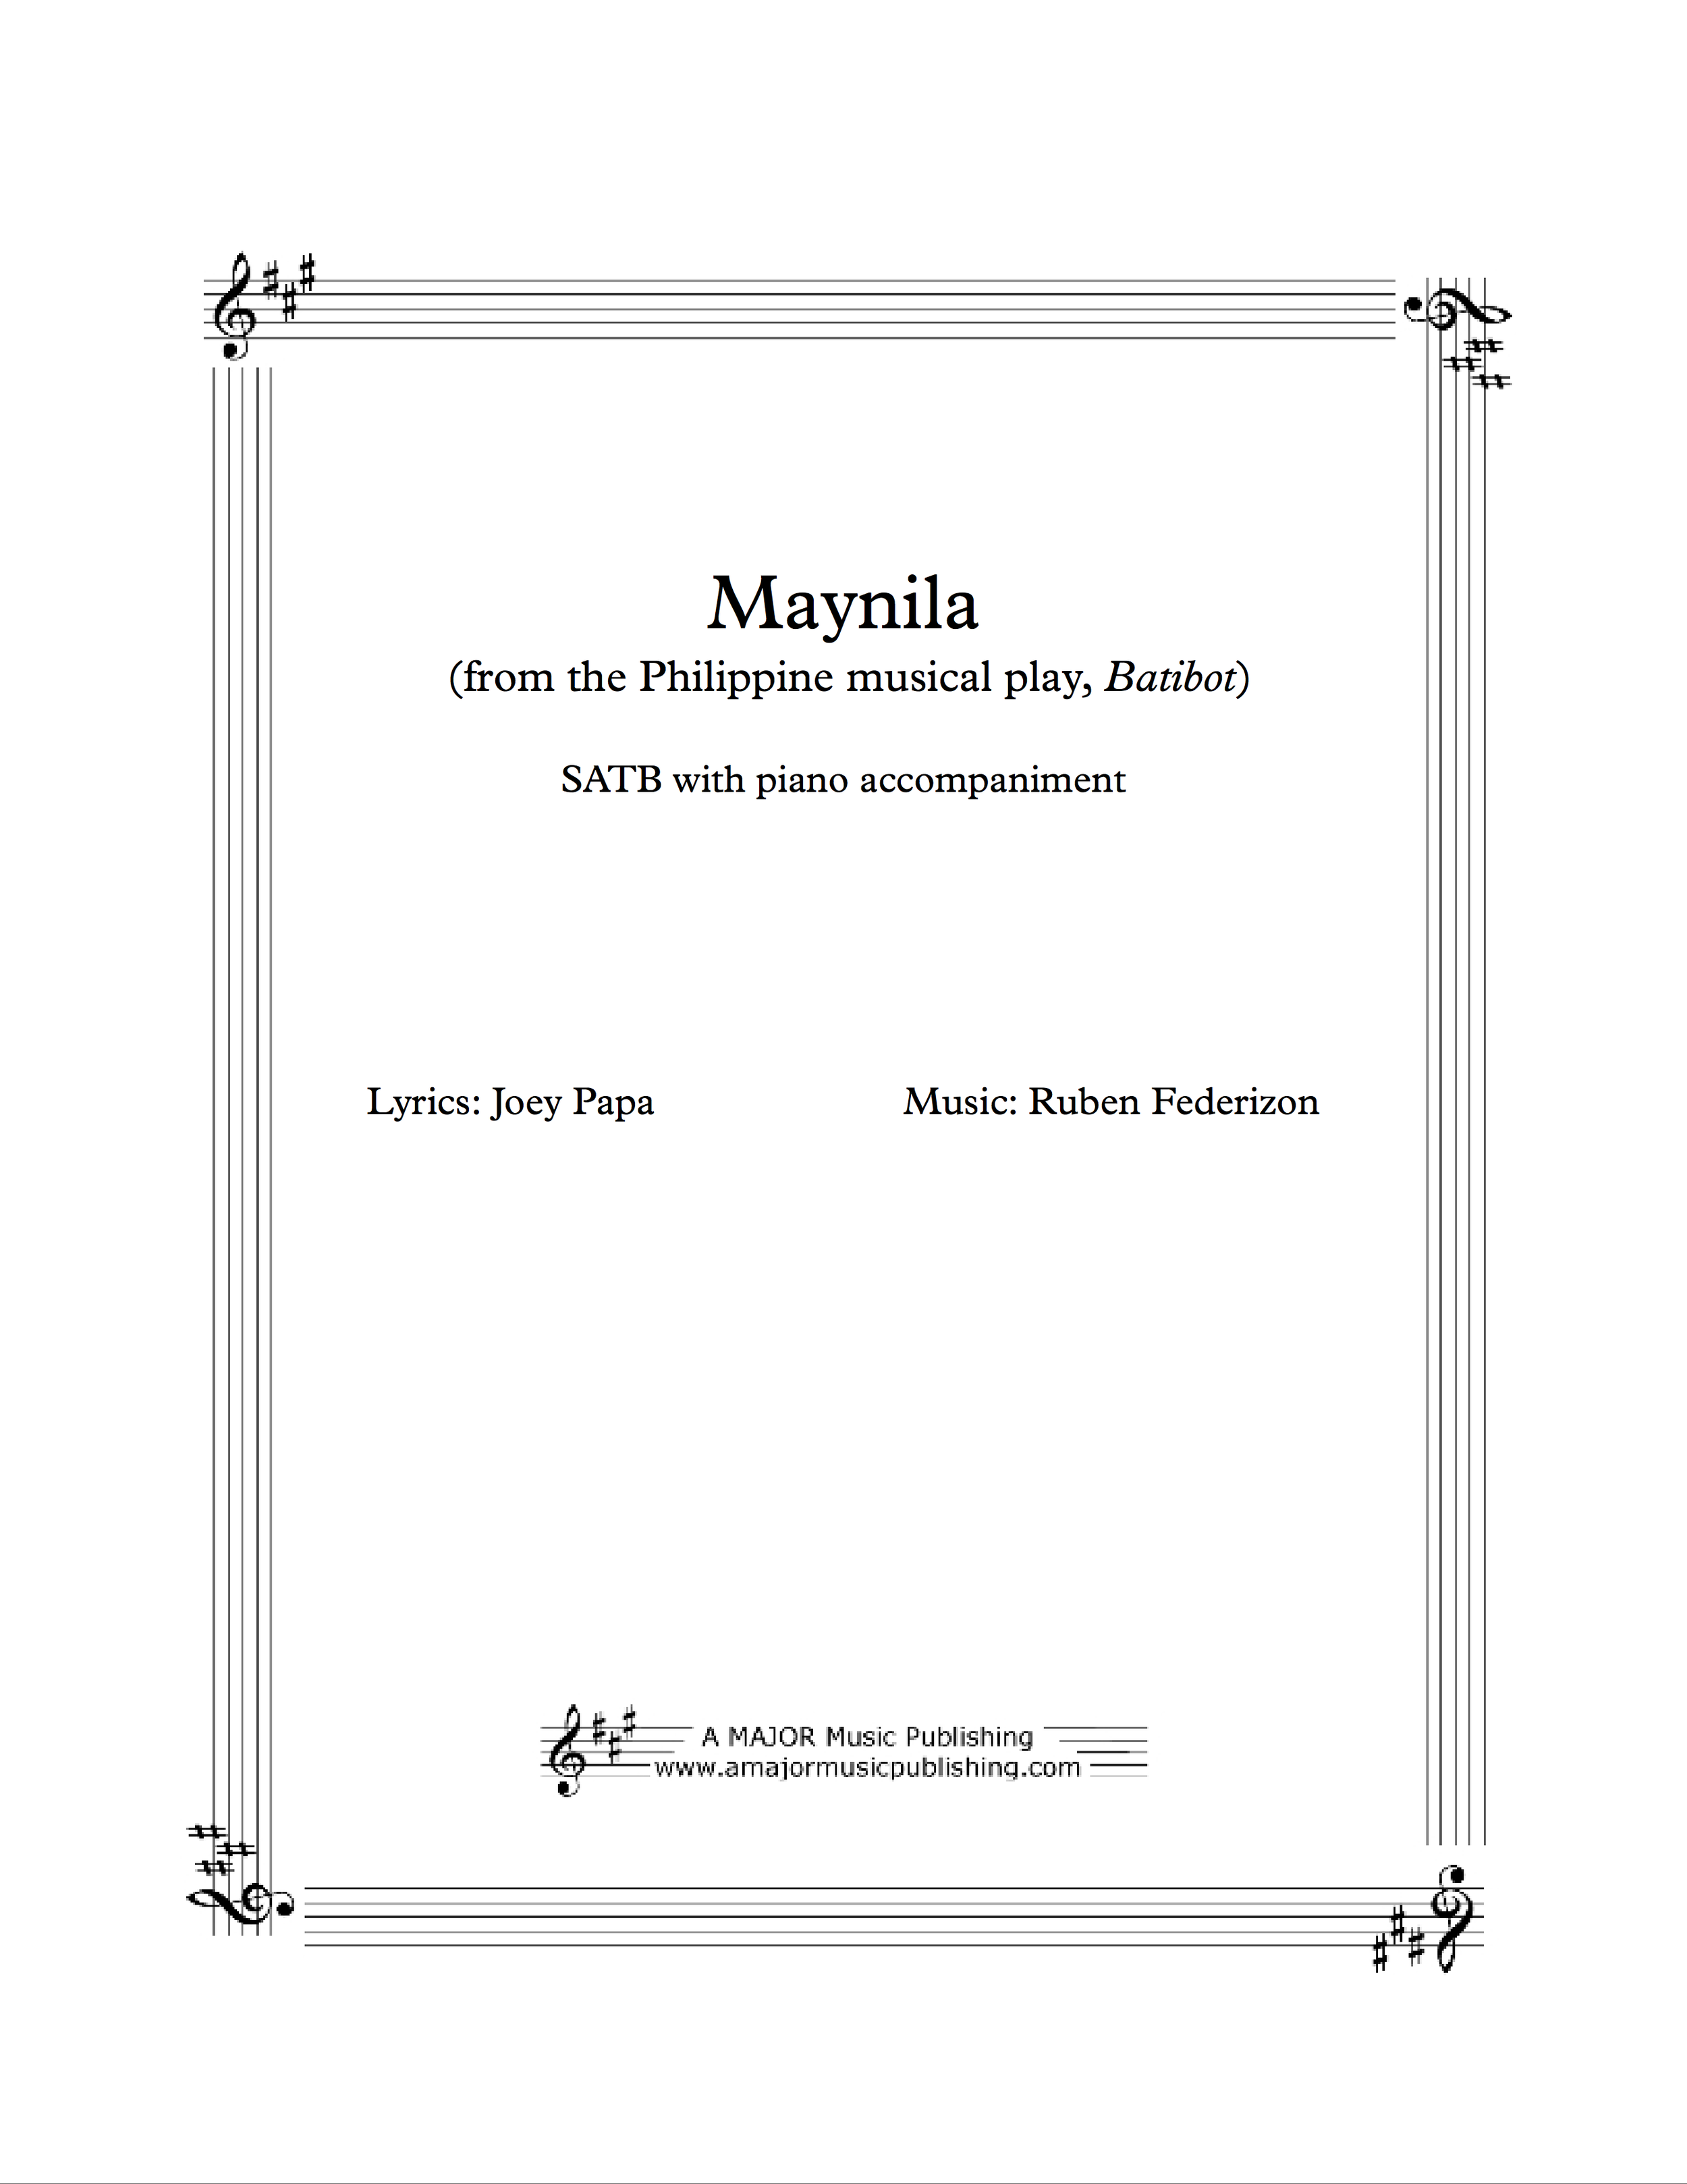 Maynila (new arr)_0001.png